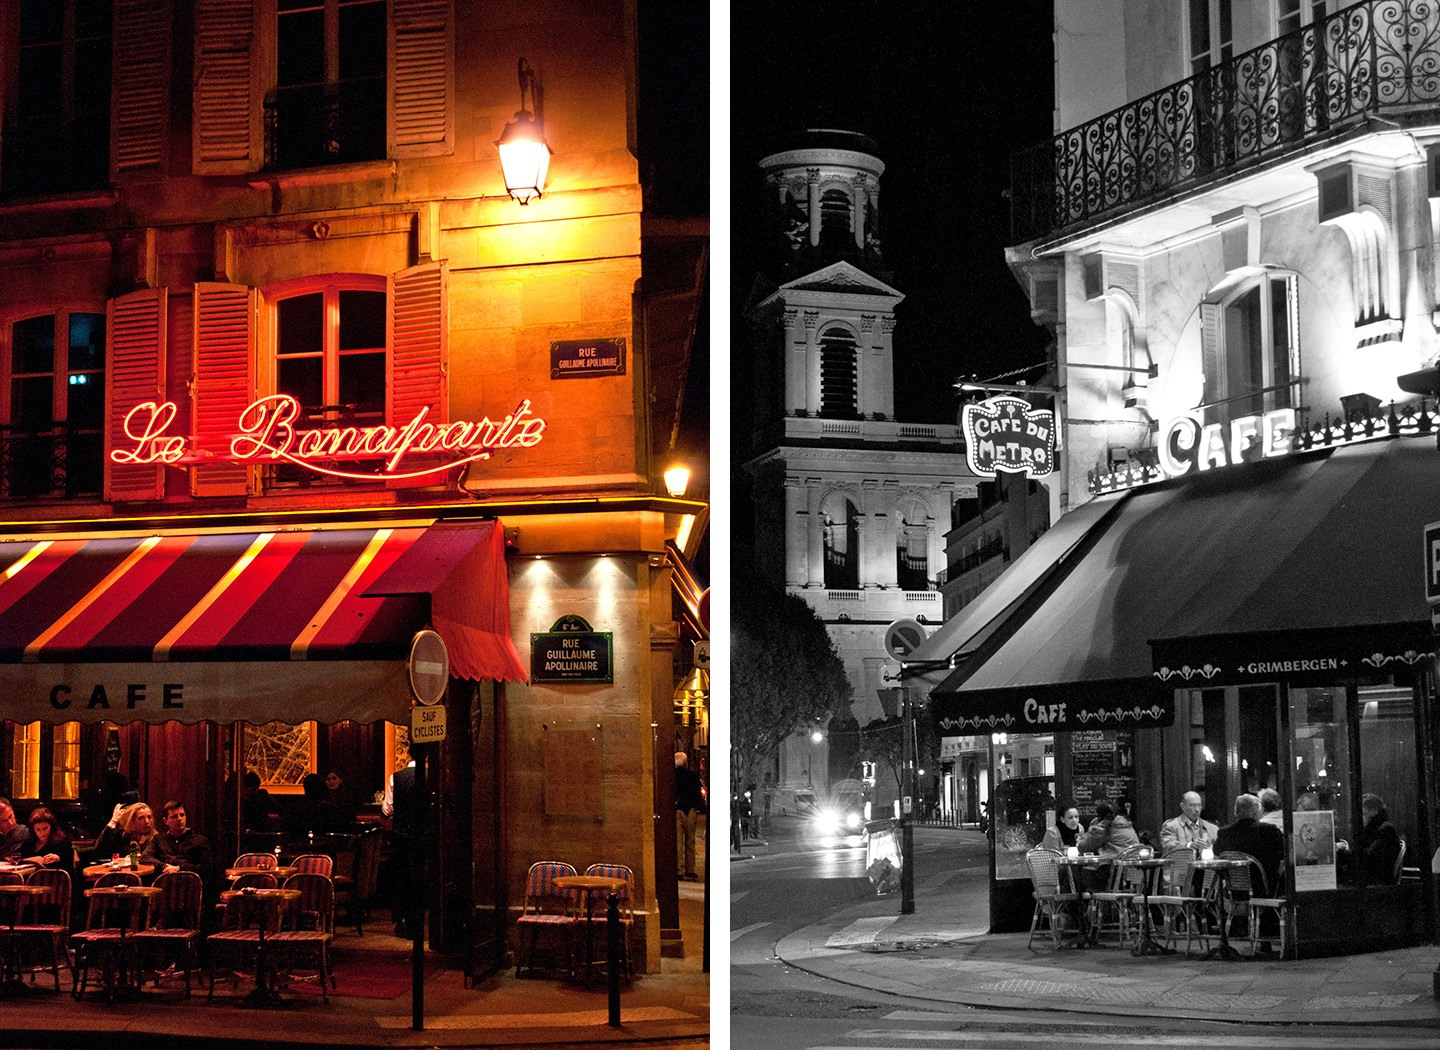 Cafes in Paris, France